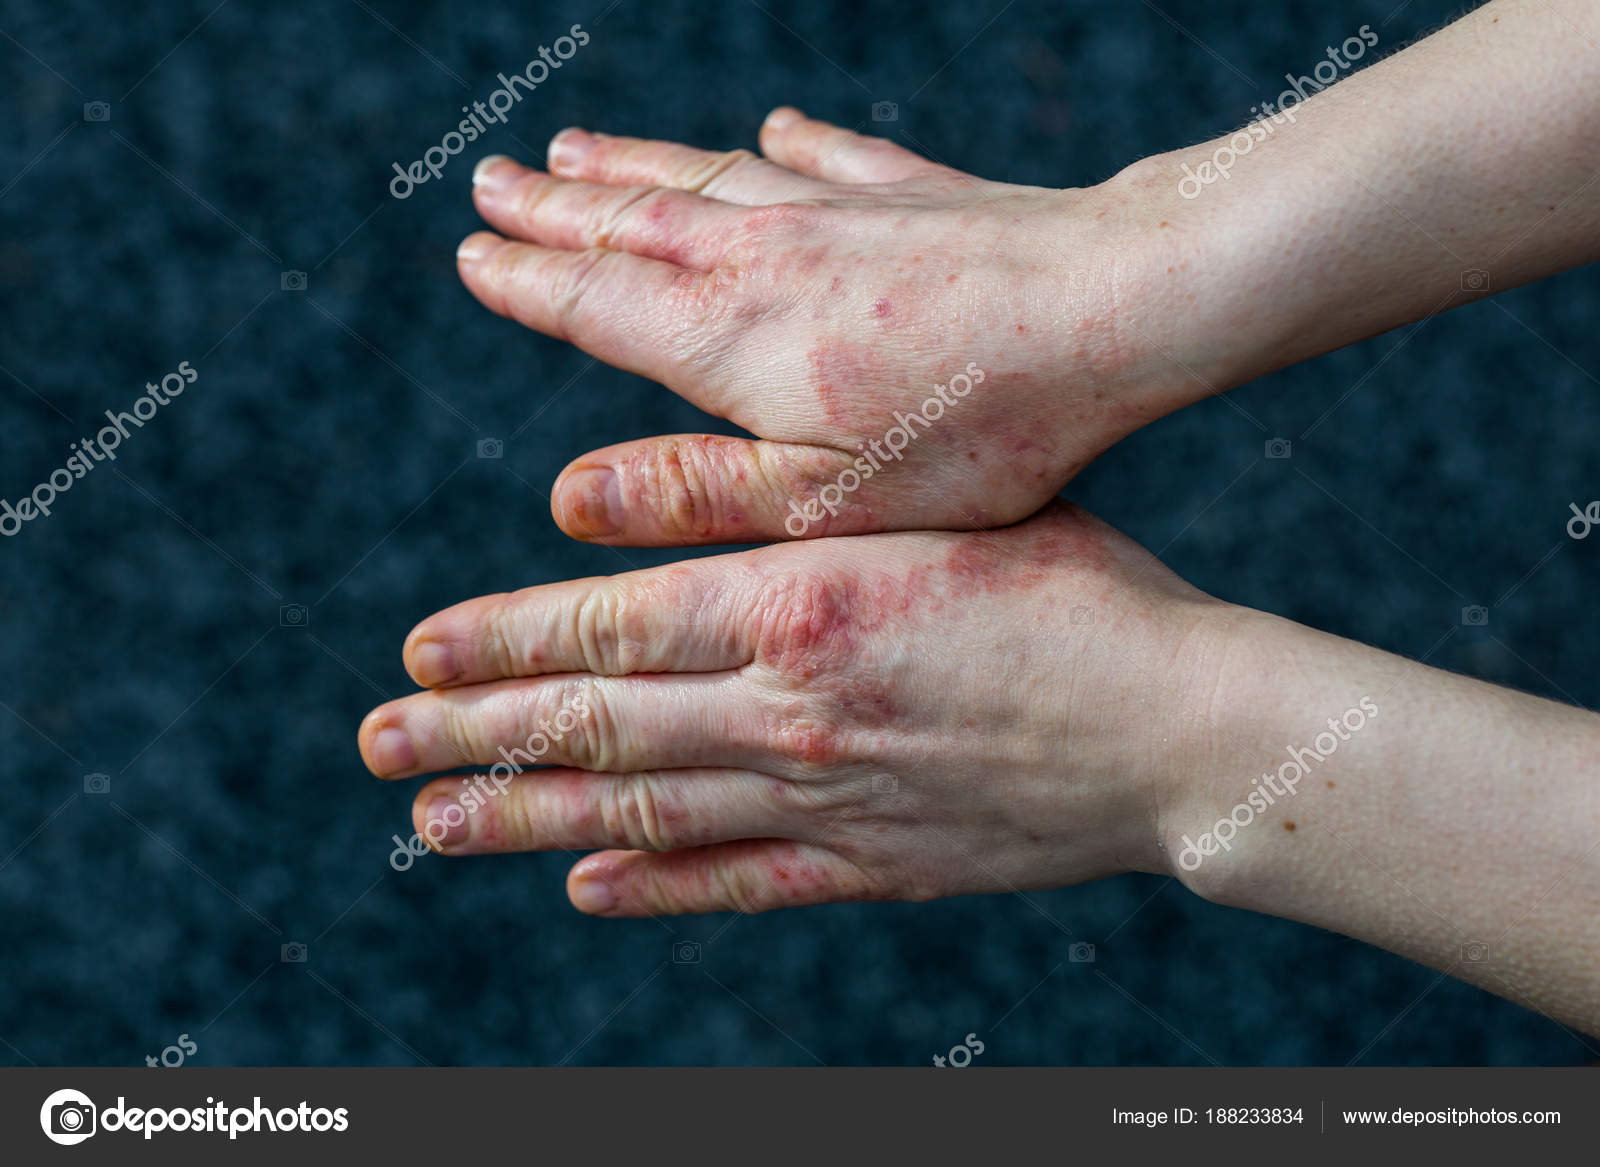 Photos: dyshidrosis | Hands with dry and stressed red